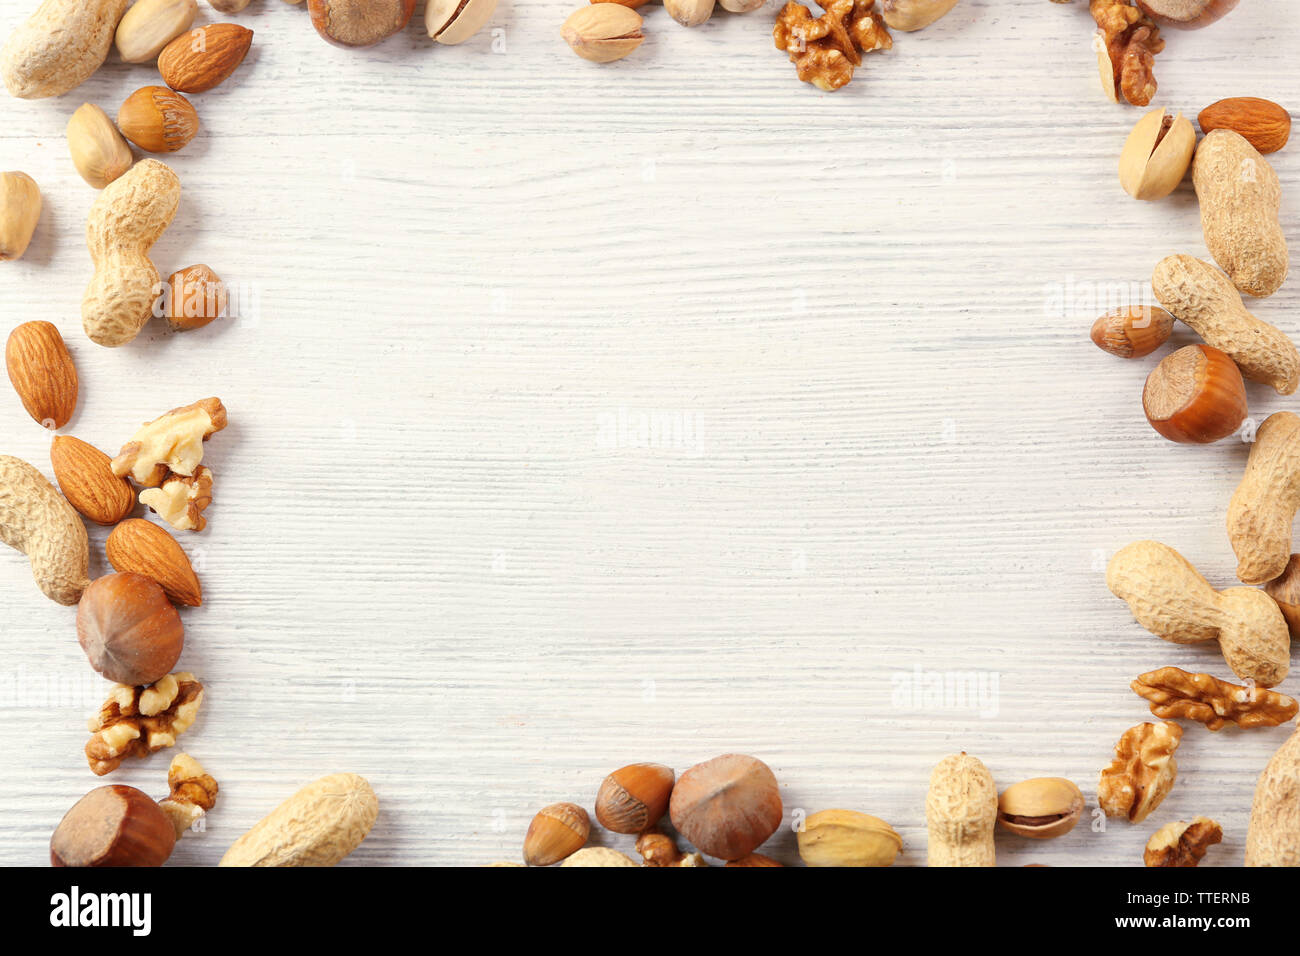 Frame made with mix of nuts on the white wooden table Stock Photo